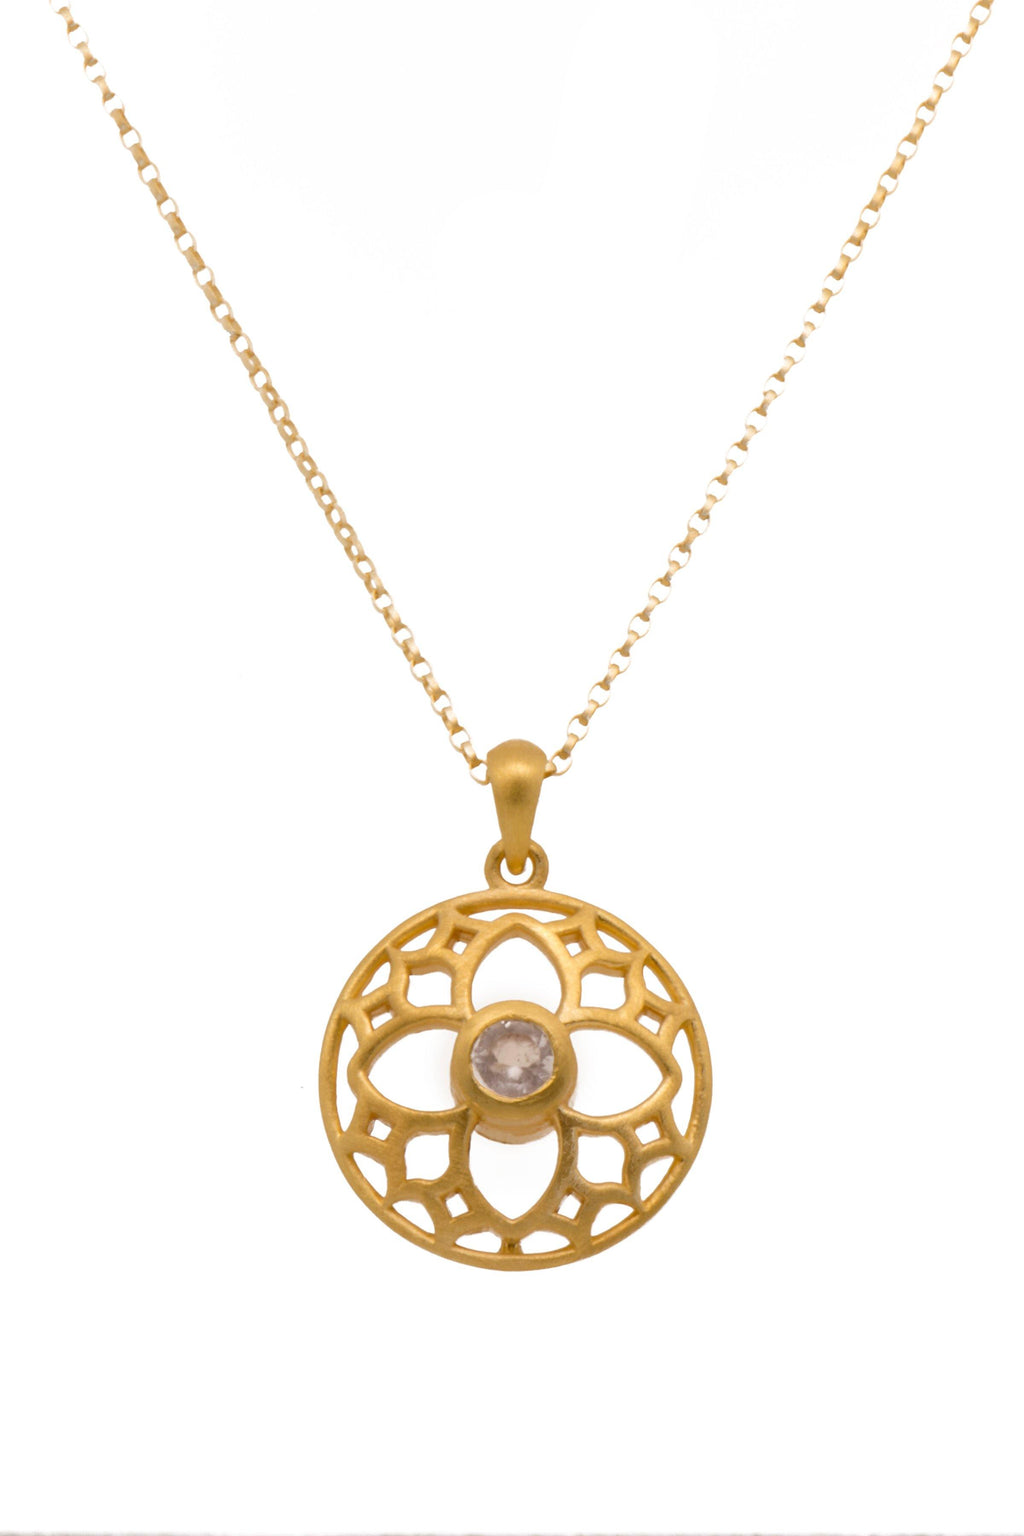 JOYFULP2RQ PENDANT- JOYFUL CIRCLE SMALL ROSE QUARTZ 24K GOLD VERMEIL